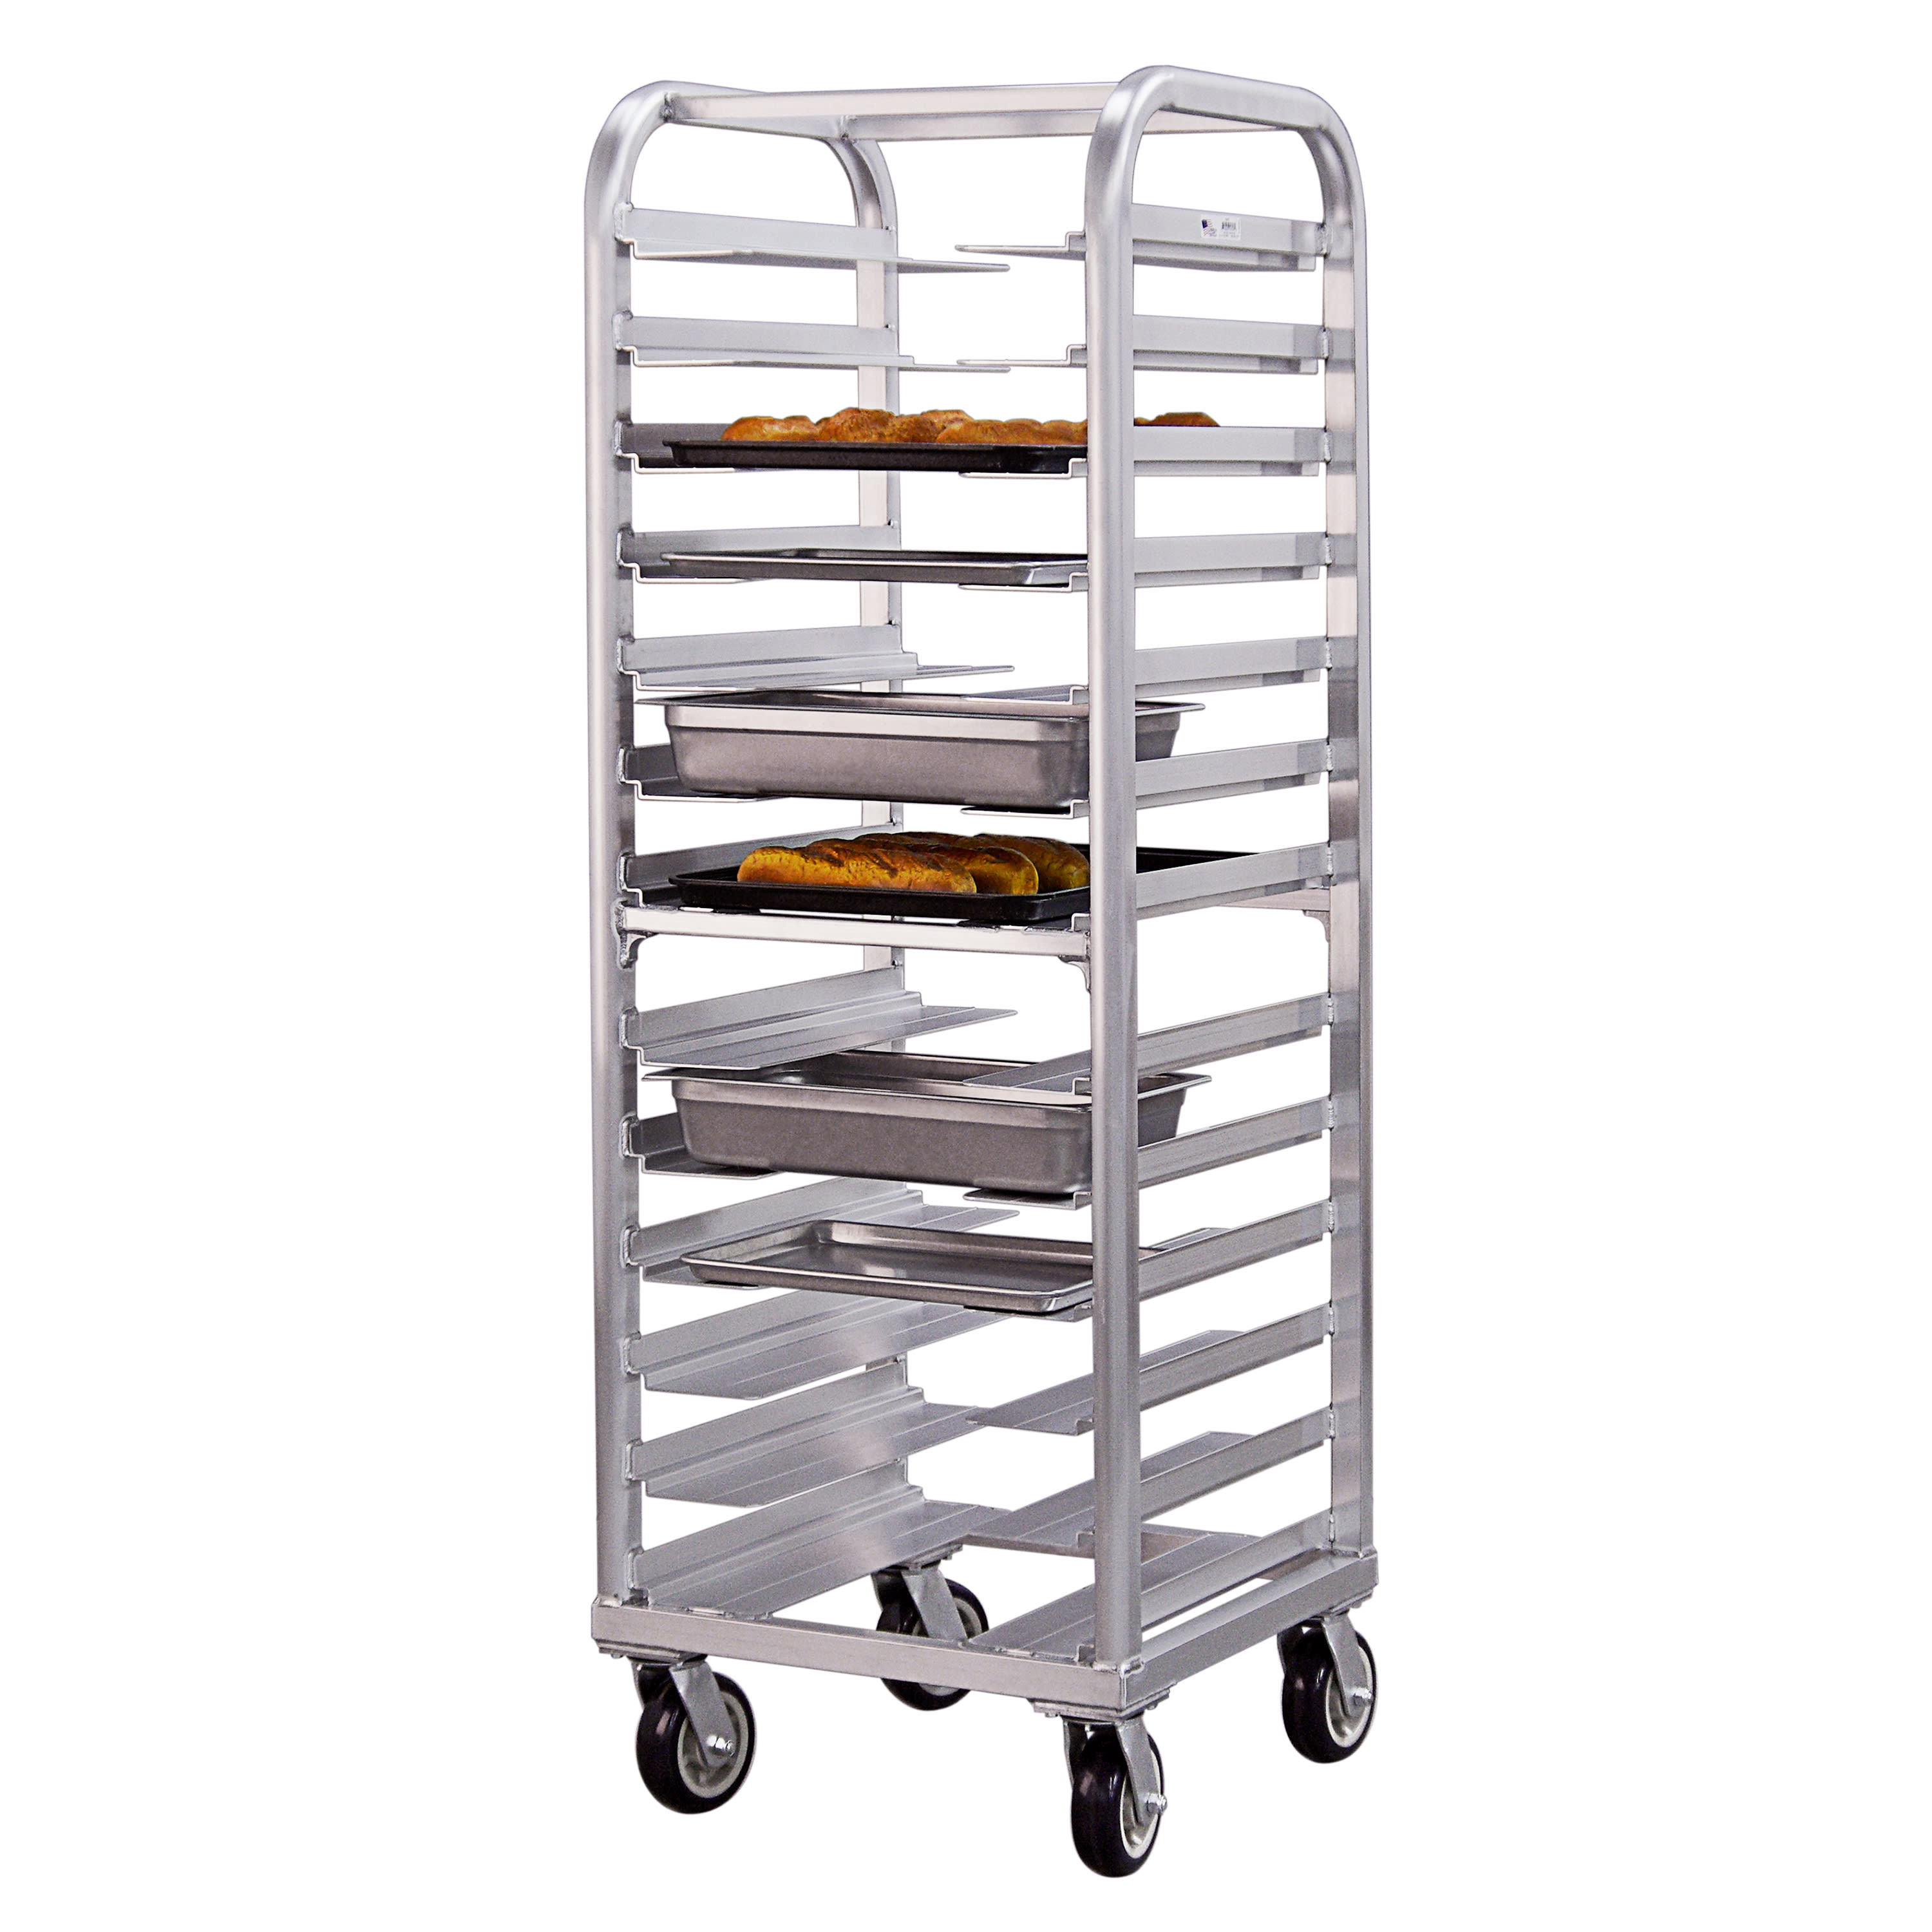 New Age 4640 25W 13-Bun Pan Rack w/ 4.5 Bottom Load Slides